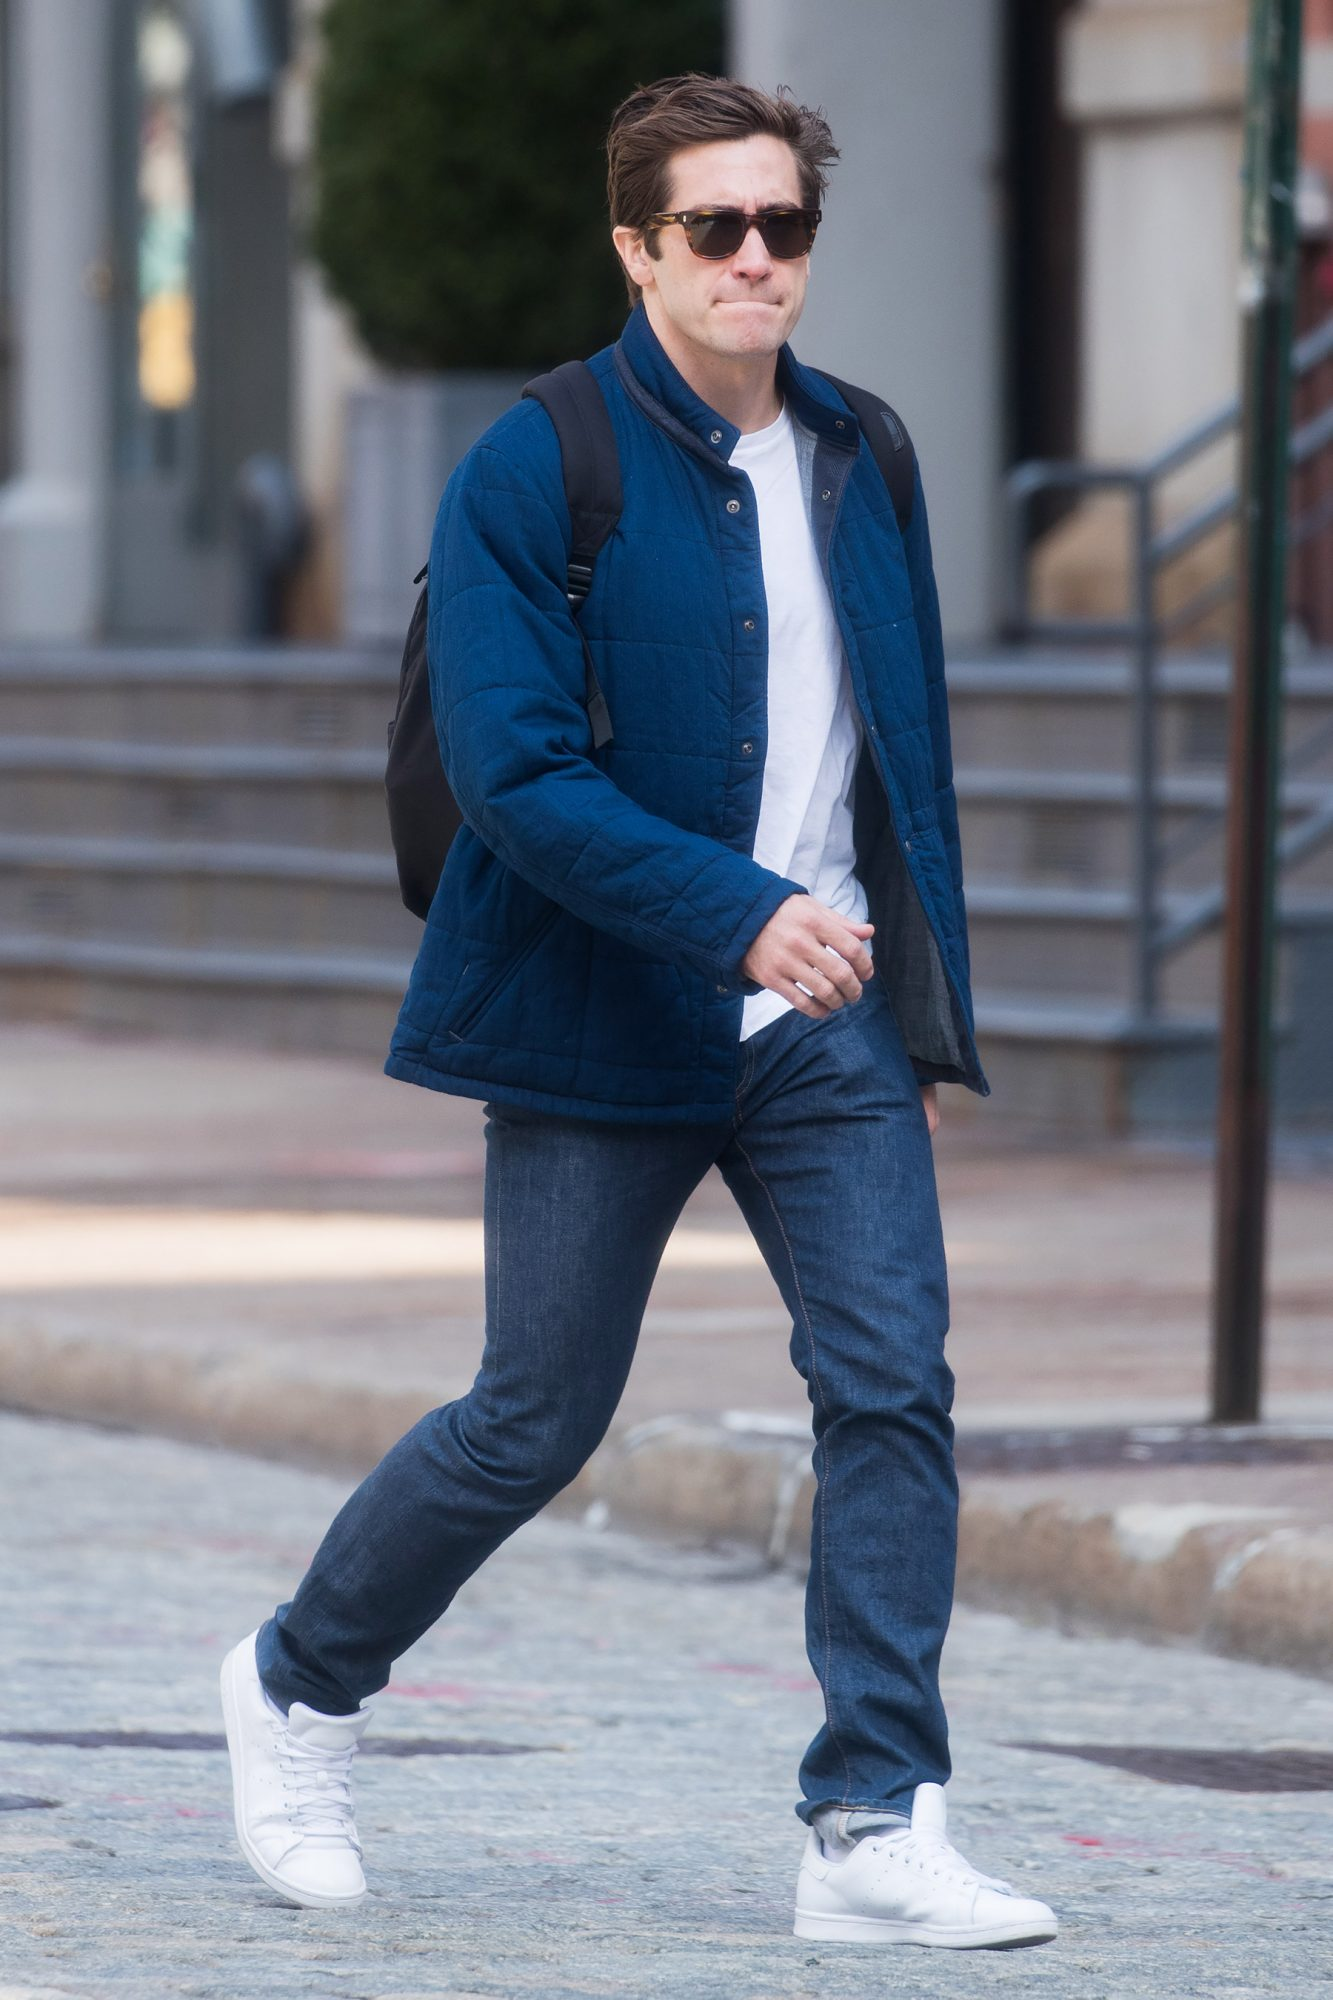 EXCLUSIVE: Jake Gyllenhaal spotted taling a stroll in Tribeca, New York.